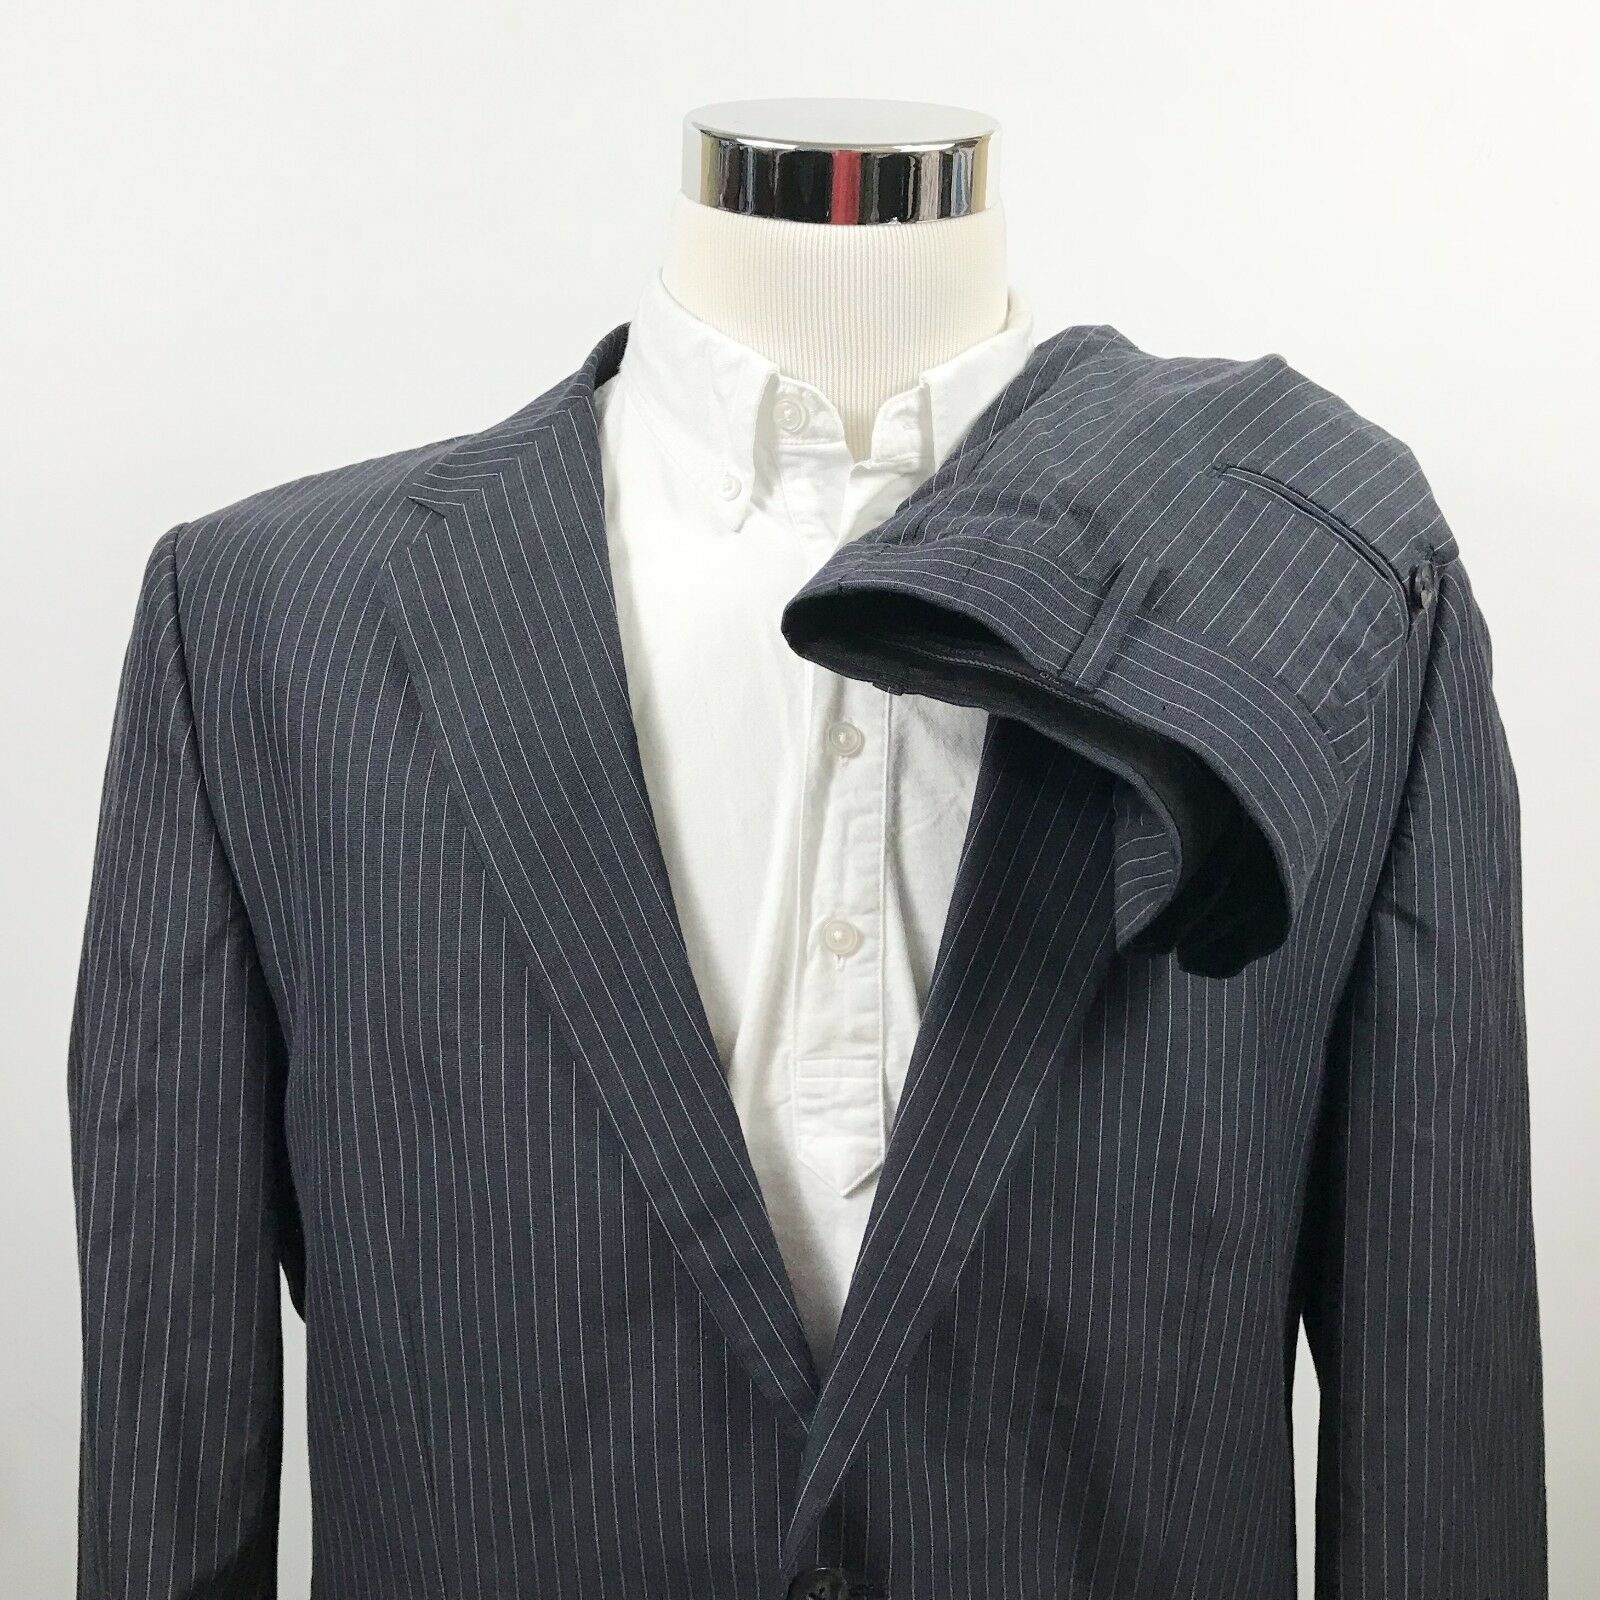 NWT Express 44L Suit 38 x 30 Flat Front Charcoal Pinstripe Two Button Cotton